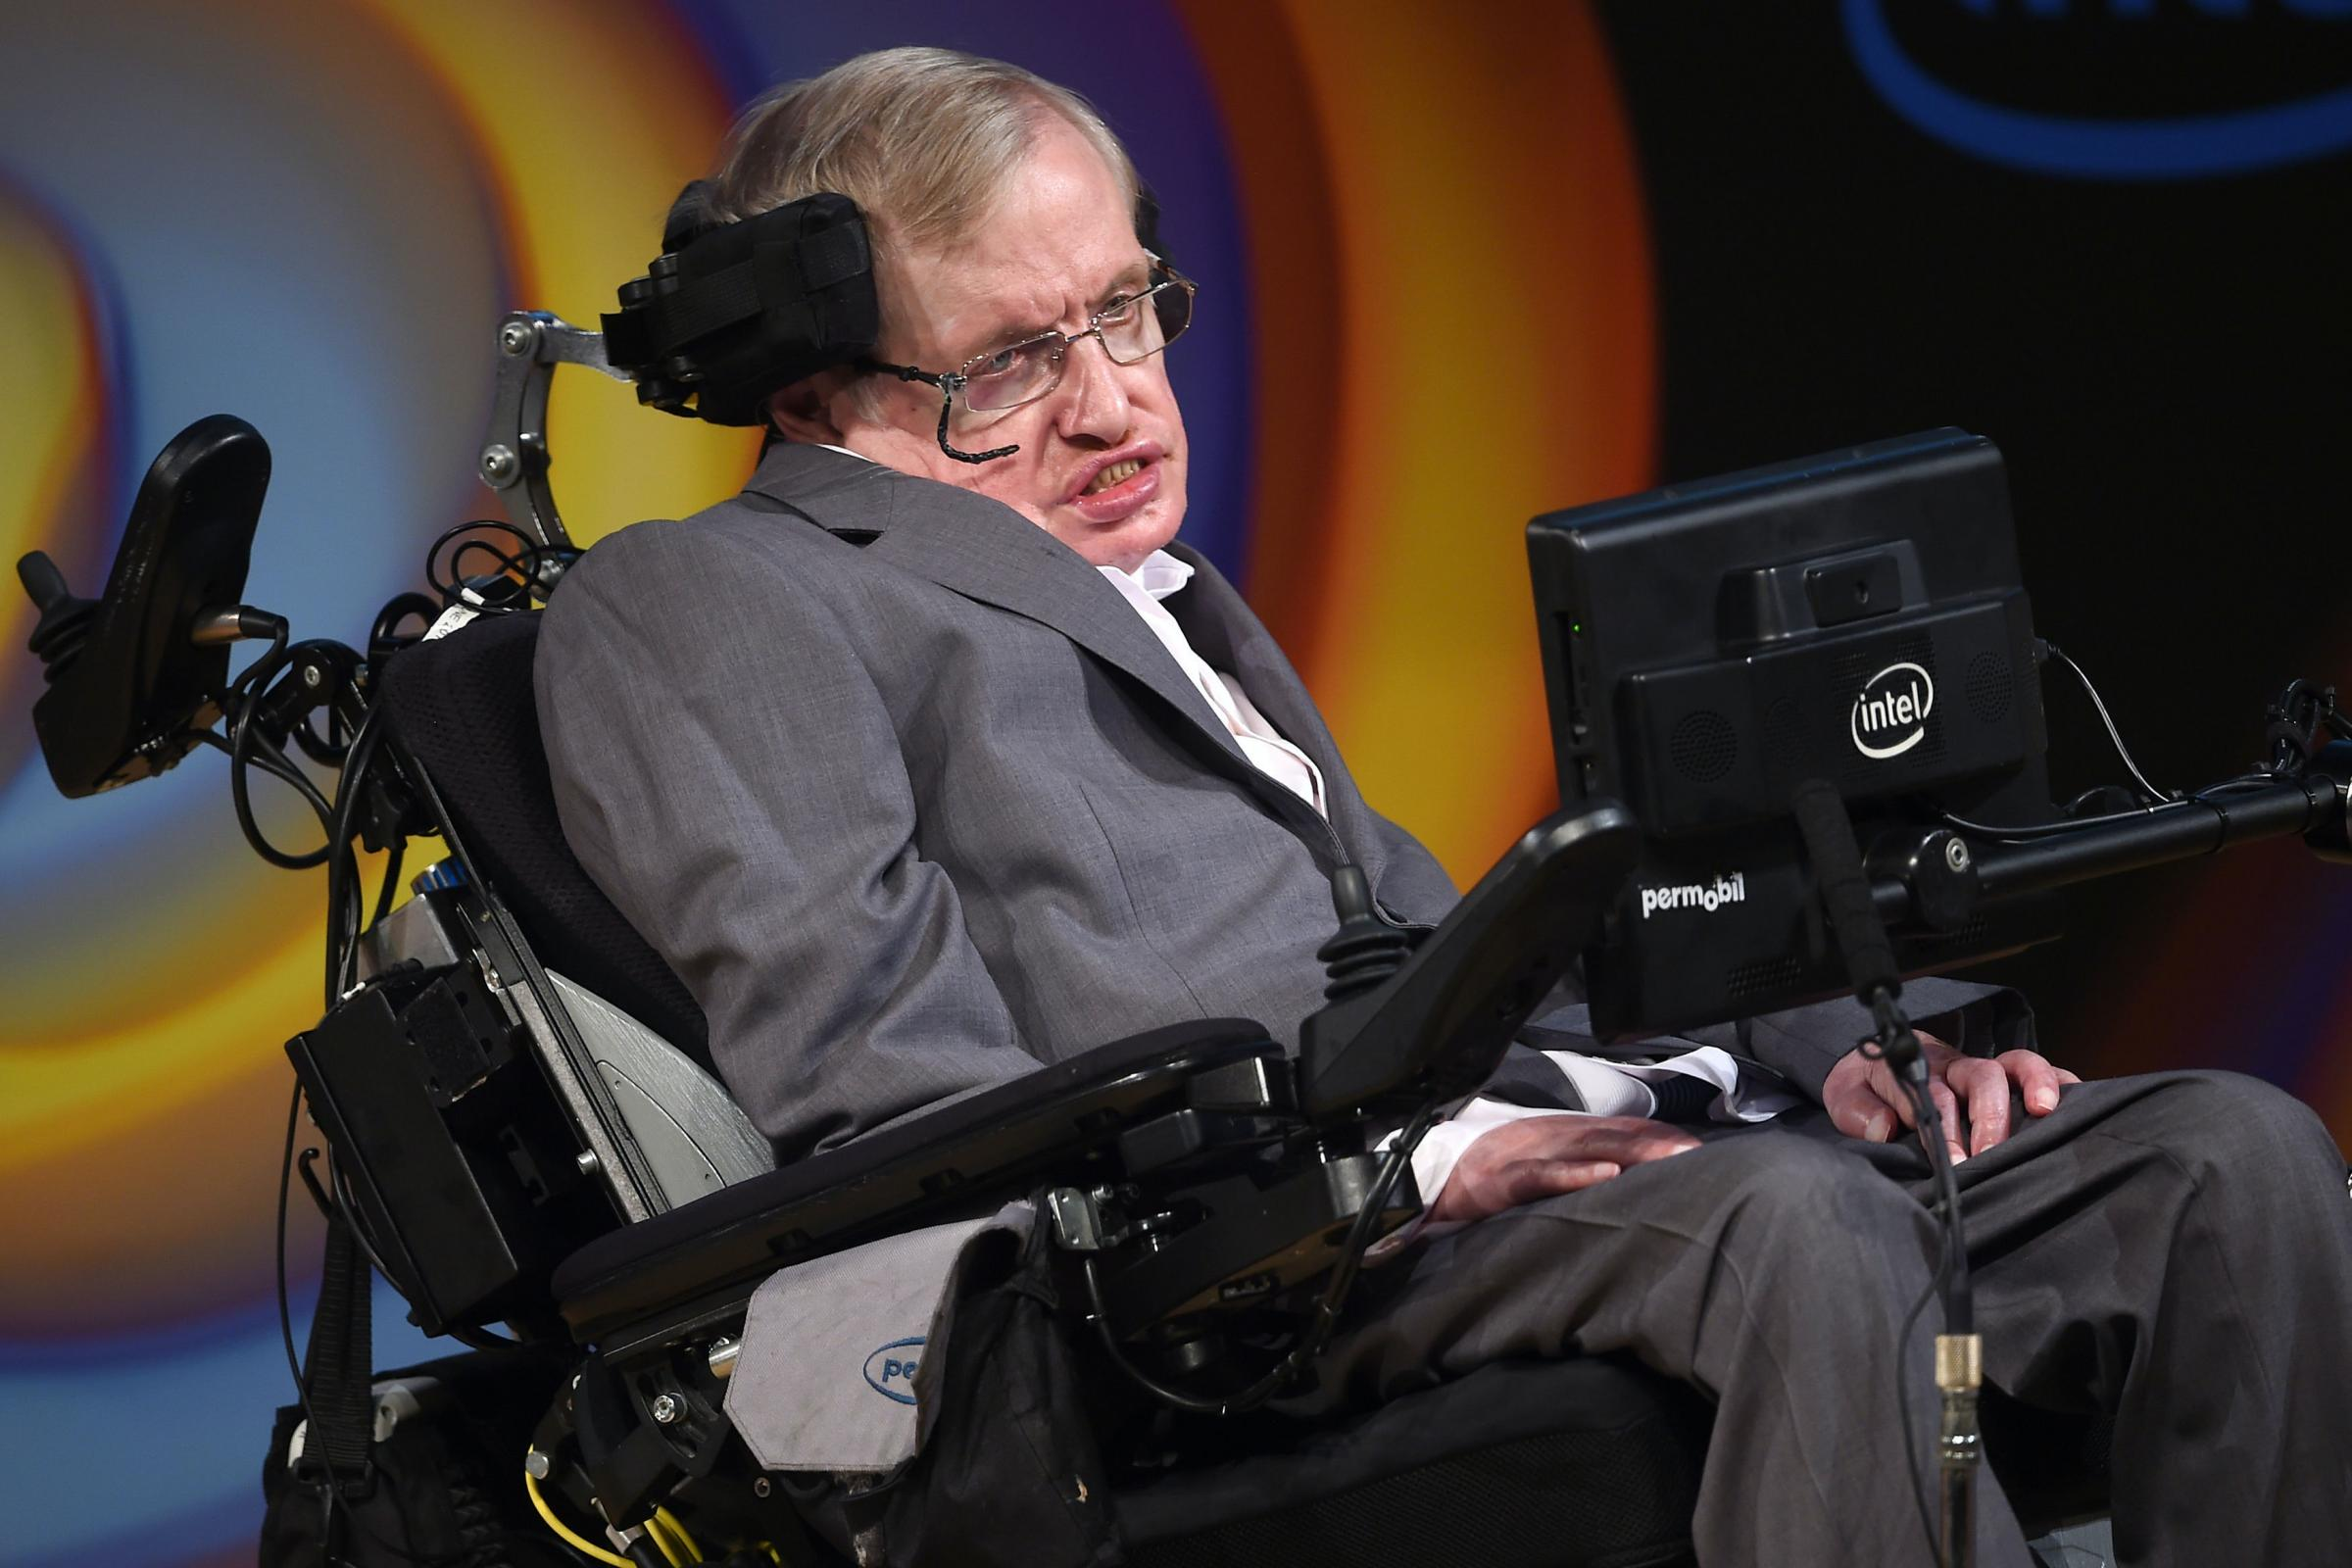 Stephen Hawking's ventilator donated to NHS to help coronavirus patients - Largs and Millport Weekly News